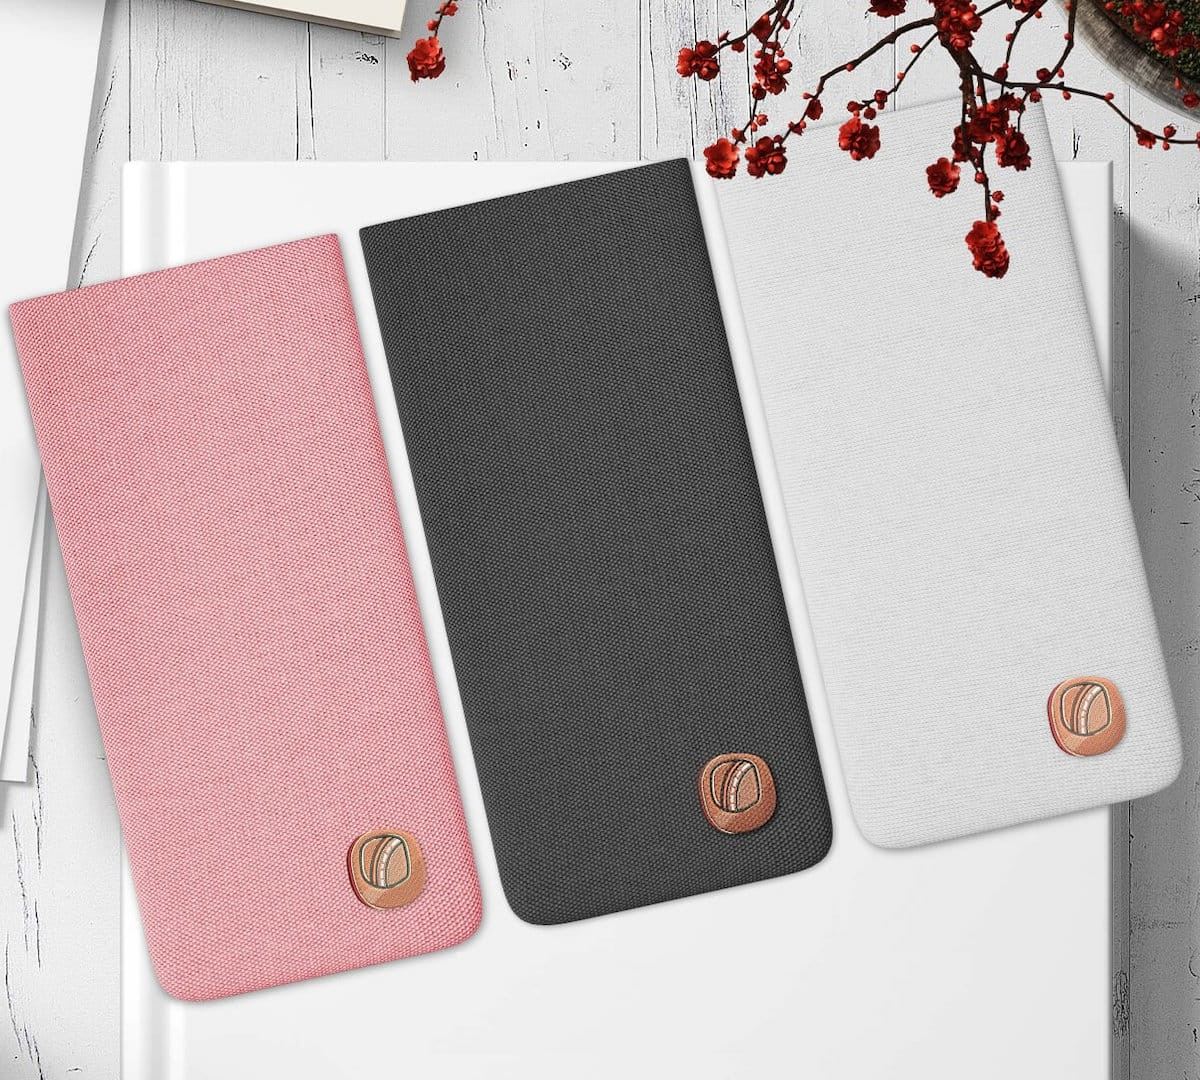 rFlect phone sleeve protects you from 5G phone signals